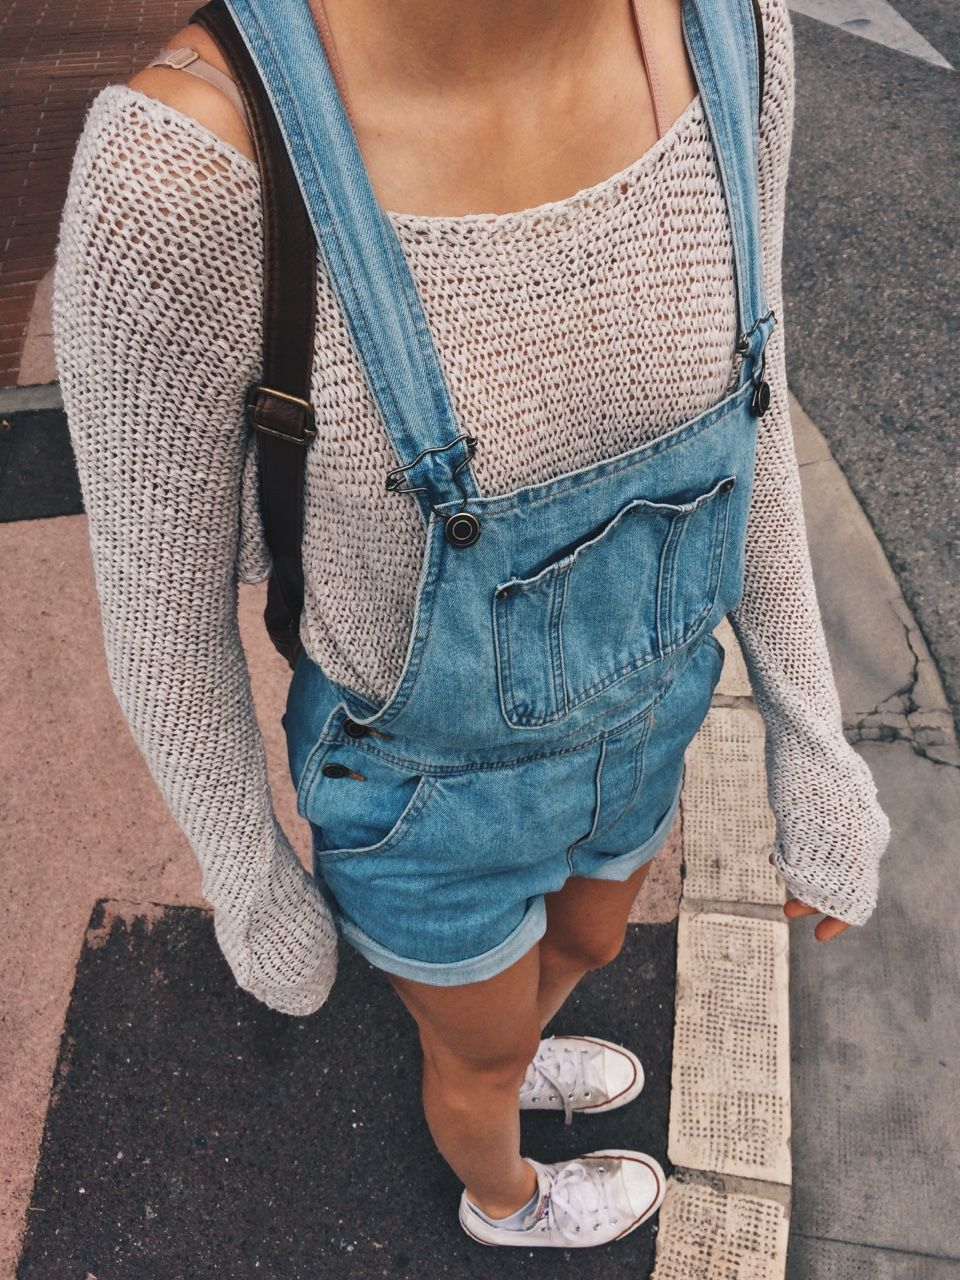 Tumblr Outfits Cute Summer Shorts